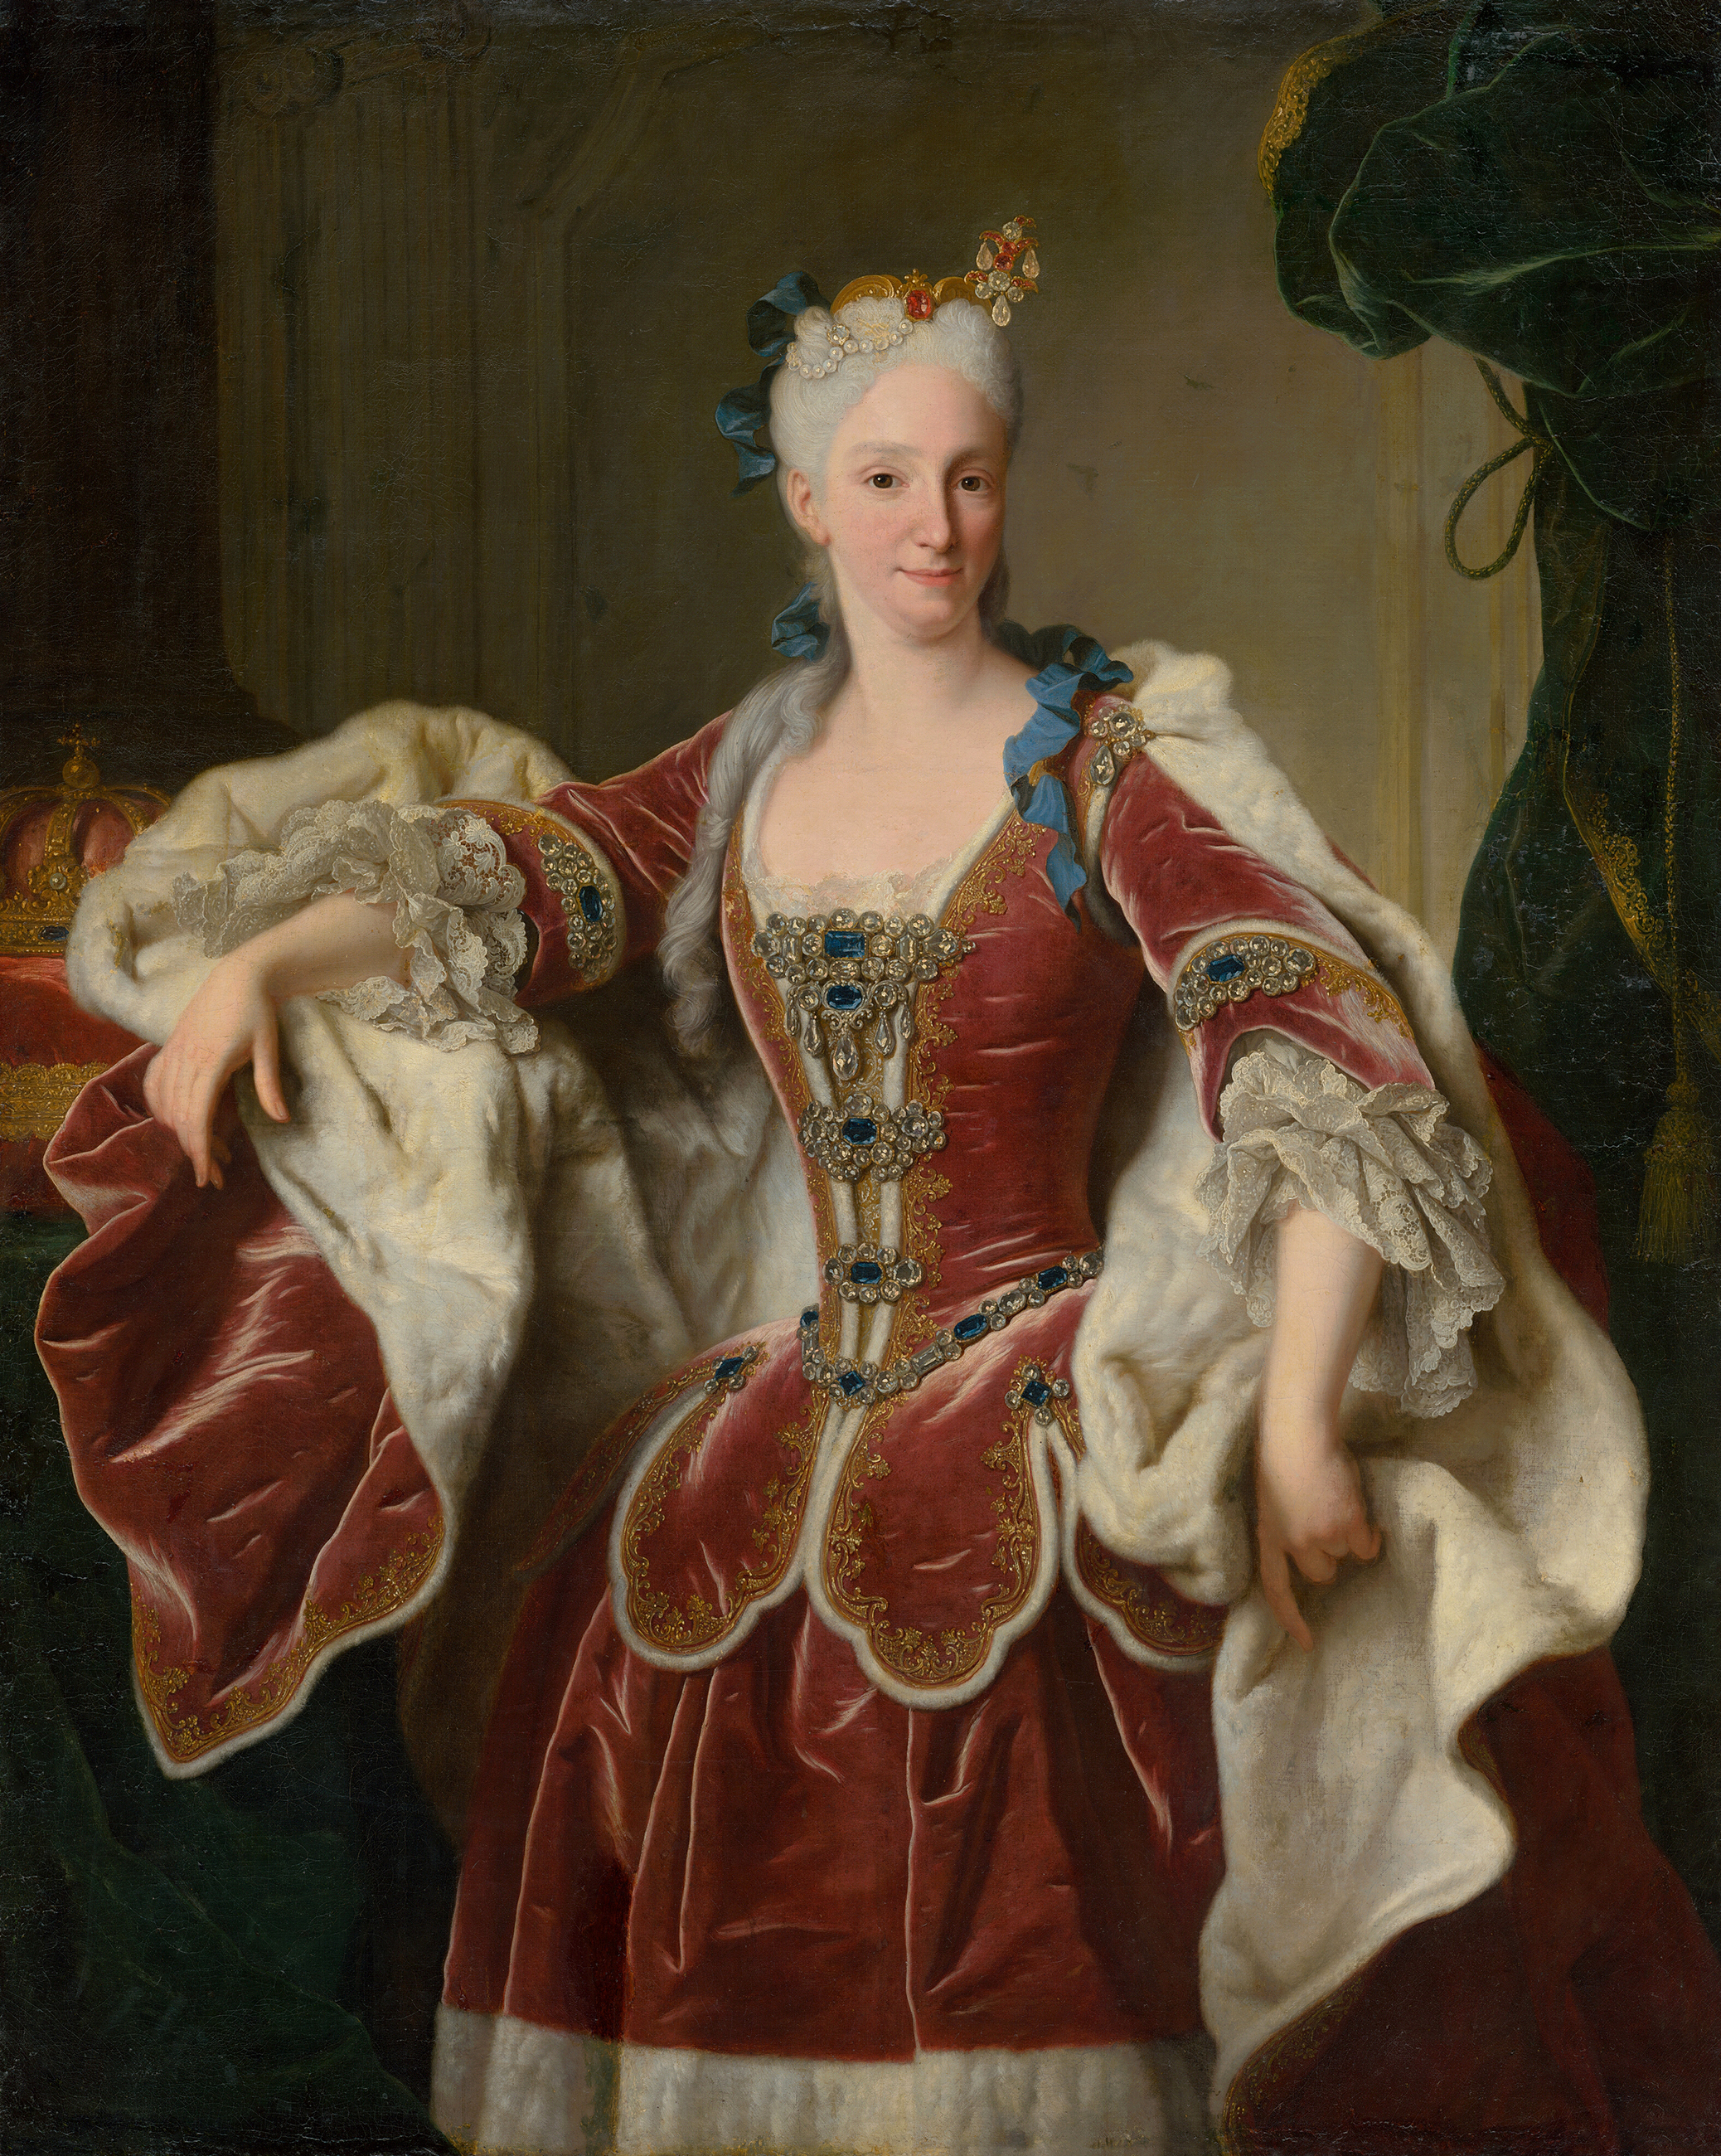 Portrait of Elisabeth Farnese (1692-1766), Queen consort of Spain (1714-1746); de facto ruler of Spain from 1714 until 1746, 1723 | Portraits of Kings